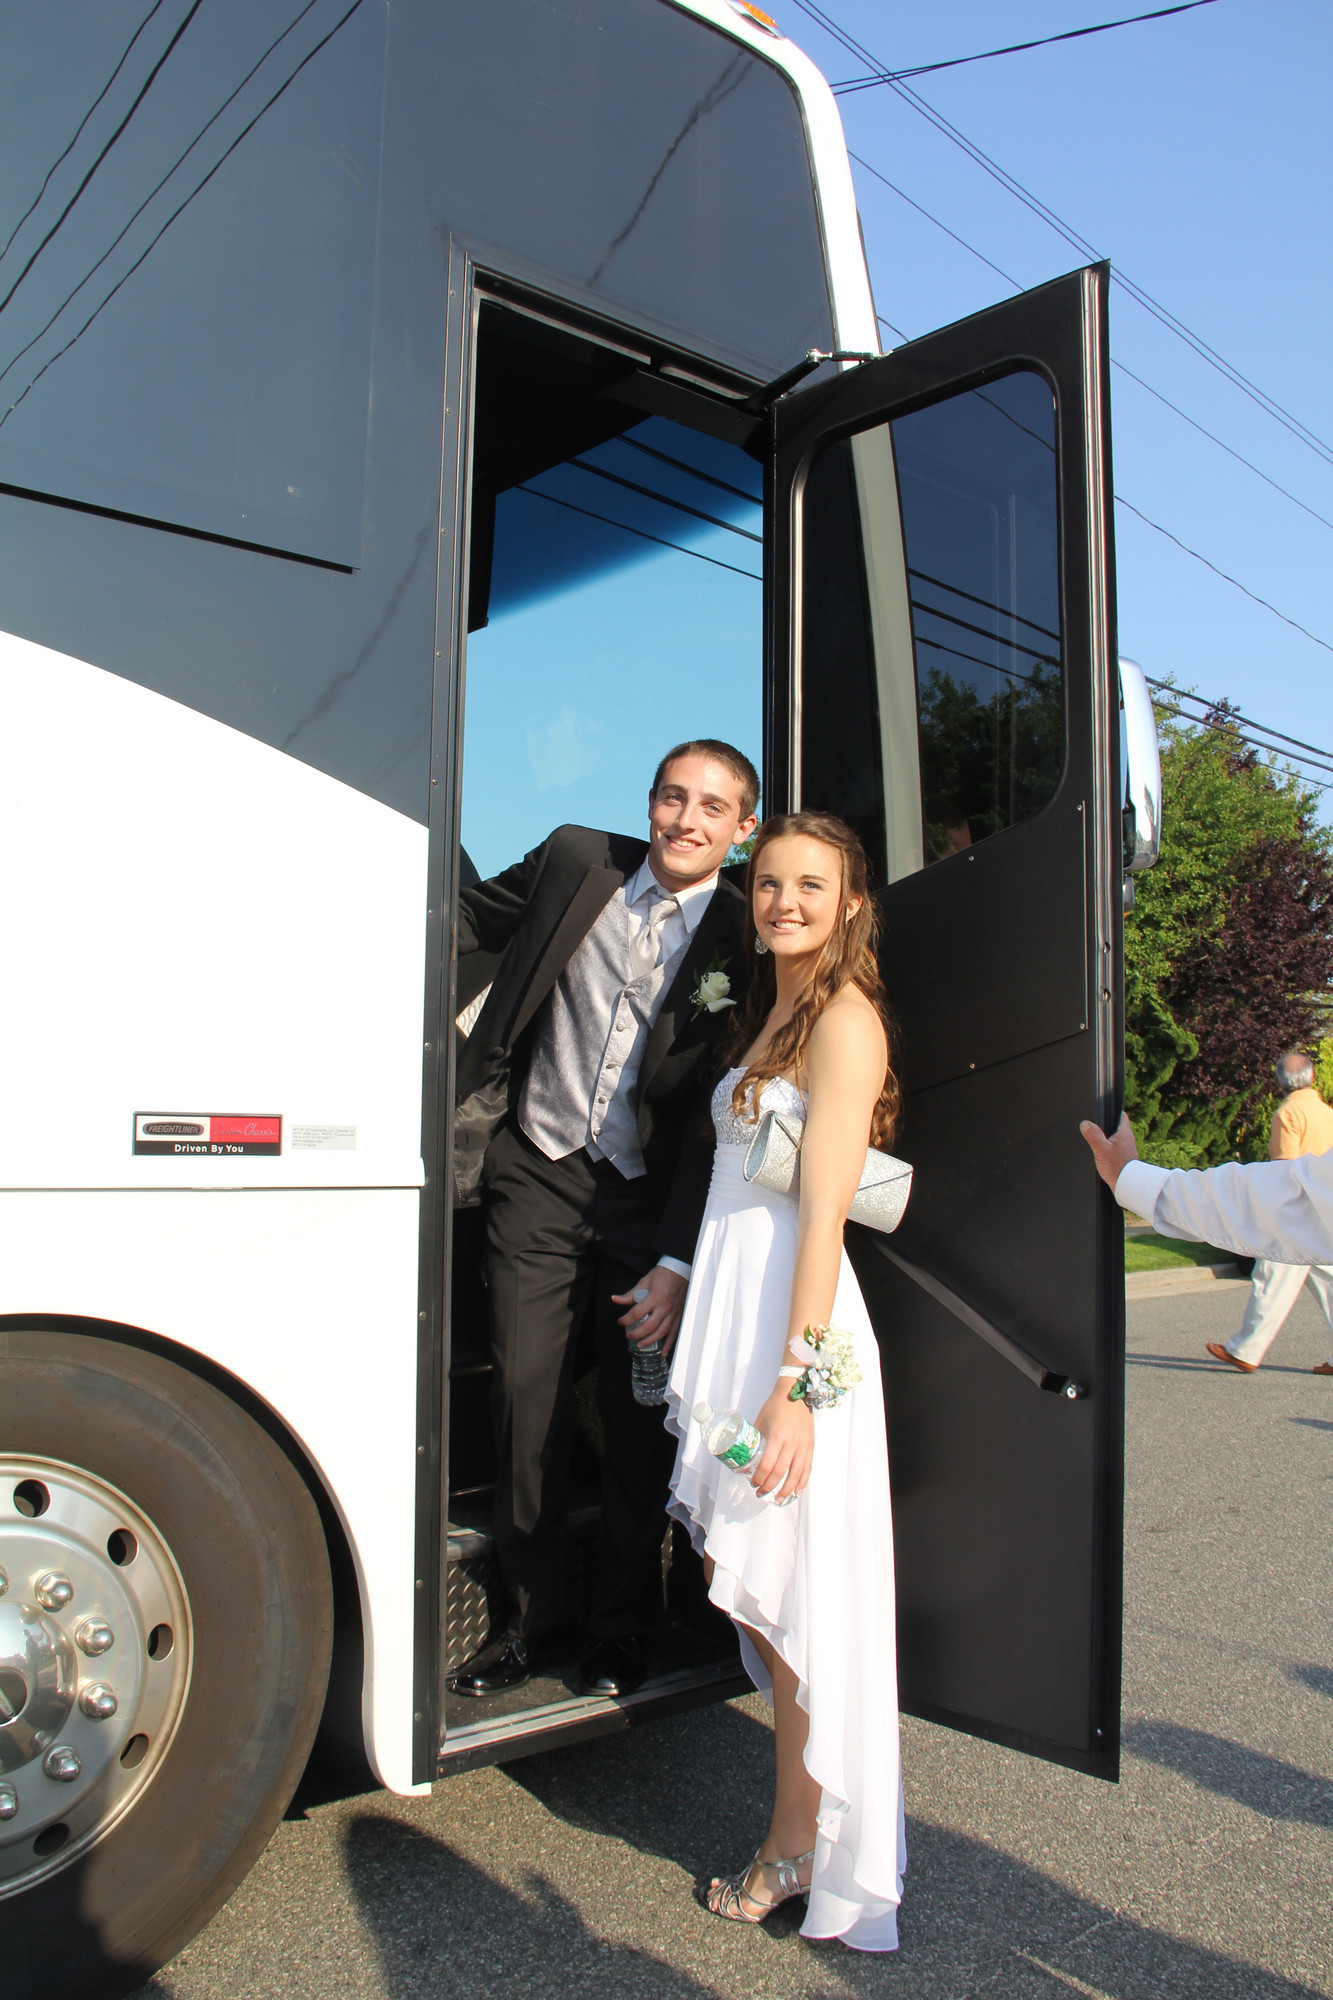 Russell Goetz and his date, Jenn Hurst, boarded the limo before heading to the prom.